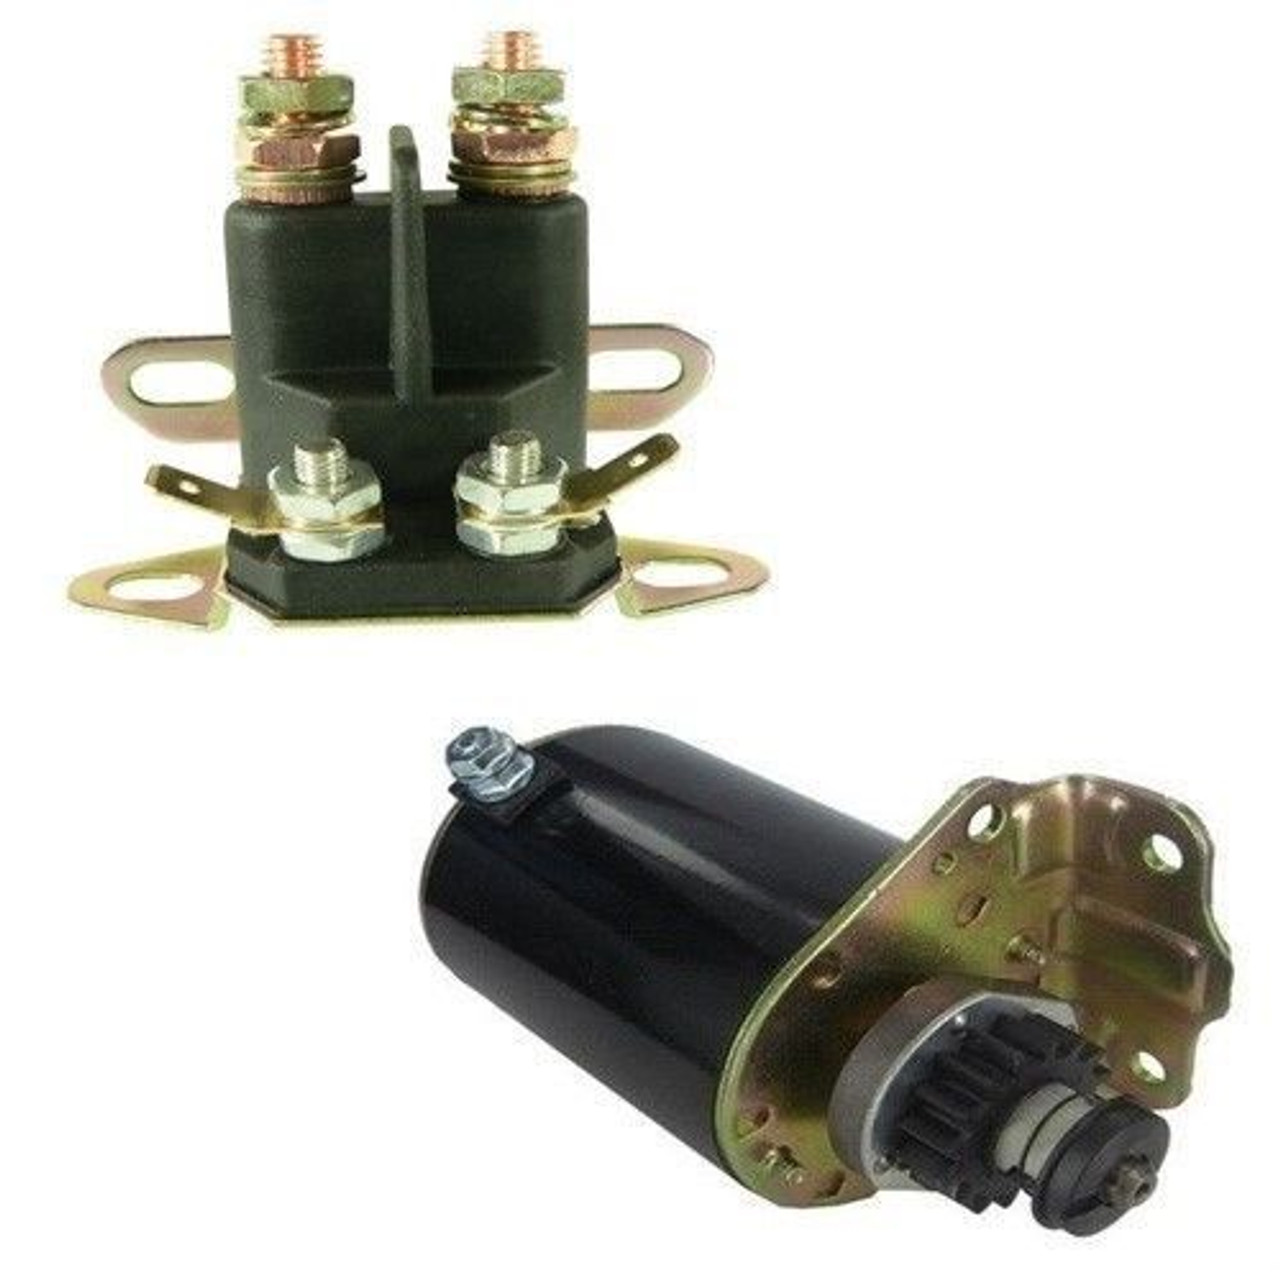 STARTER SOLENOID KIT FOR CUB CADET LAWN TRACTOR 1015 1020 1105 1110 1225  182 282